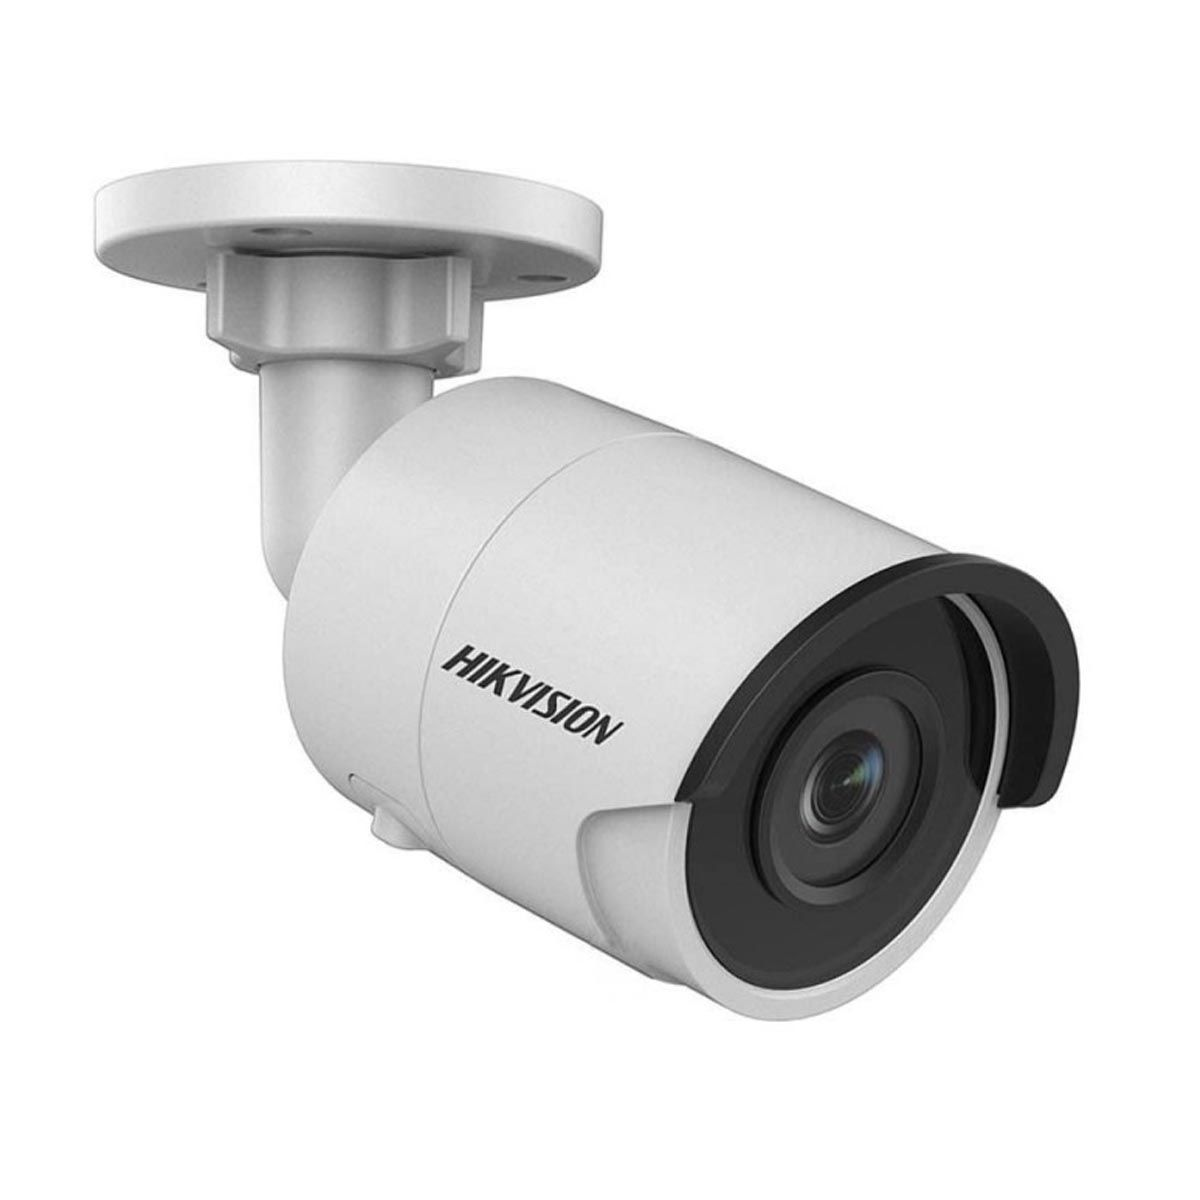 Hikvision DS-2CD2043G0-I(2.8mm)